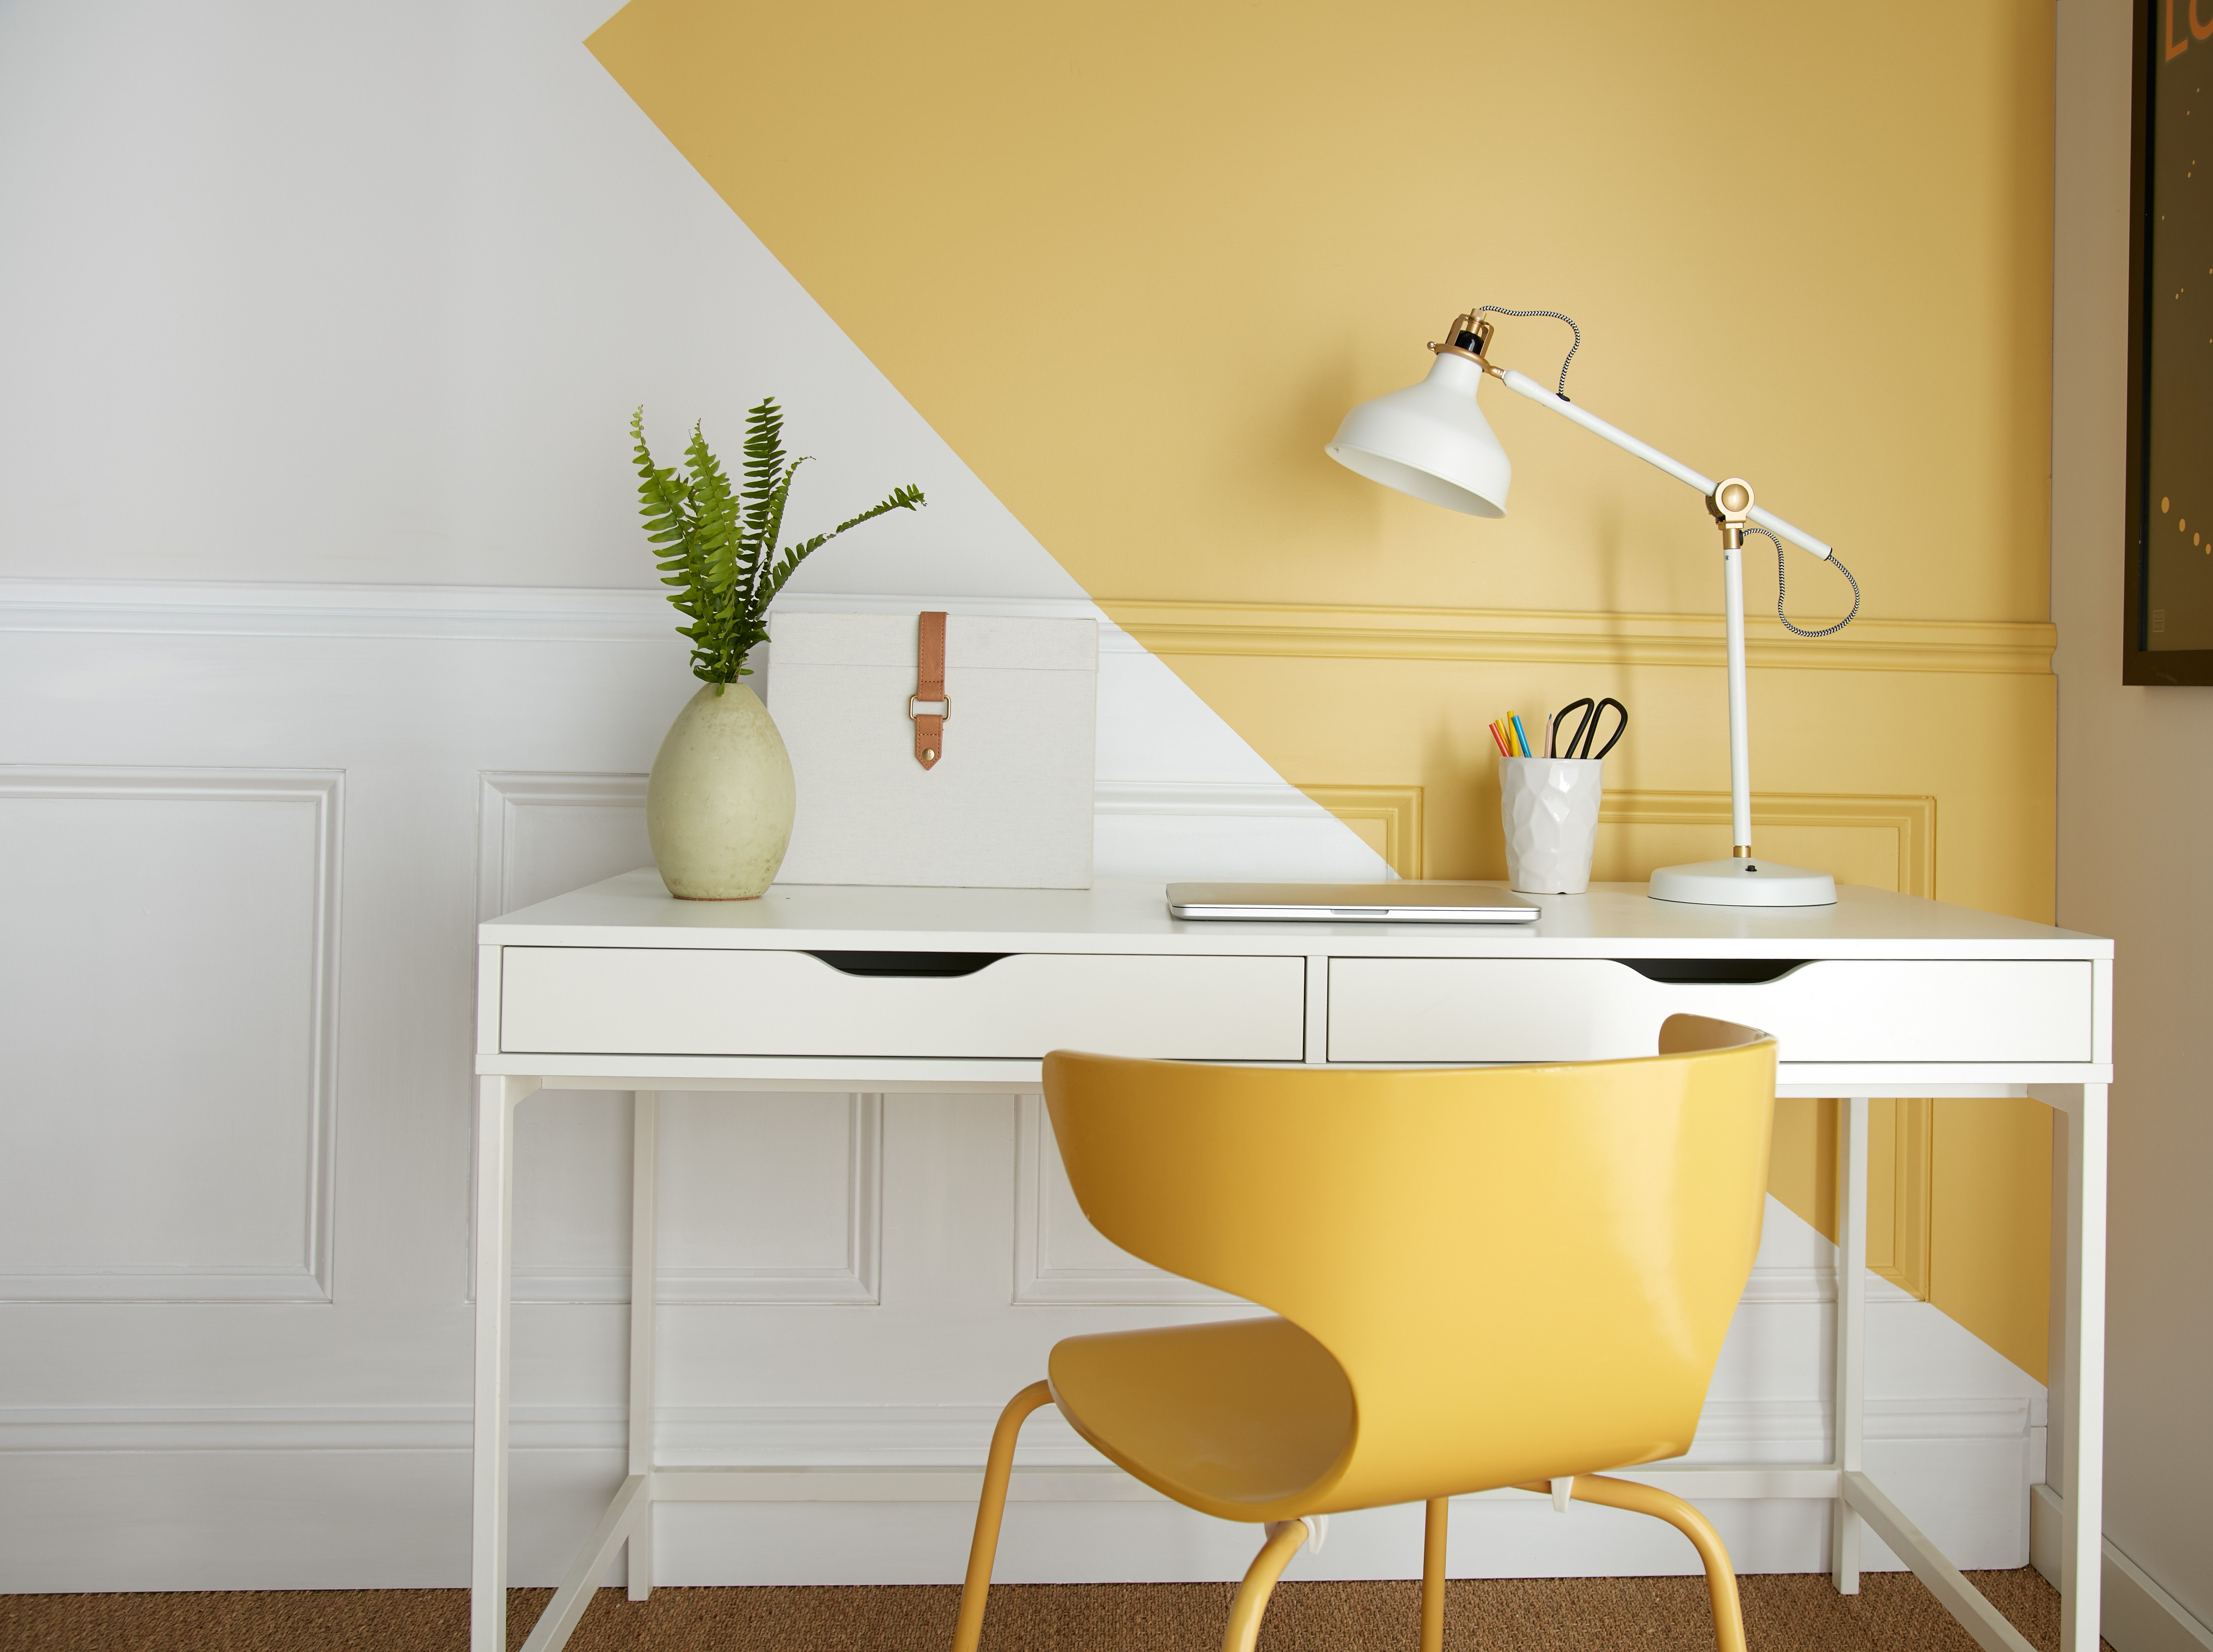 These Are The Paint Color Trends For 2020 According To Behr